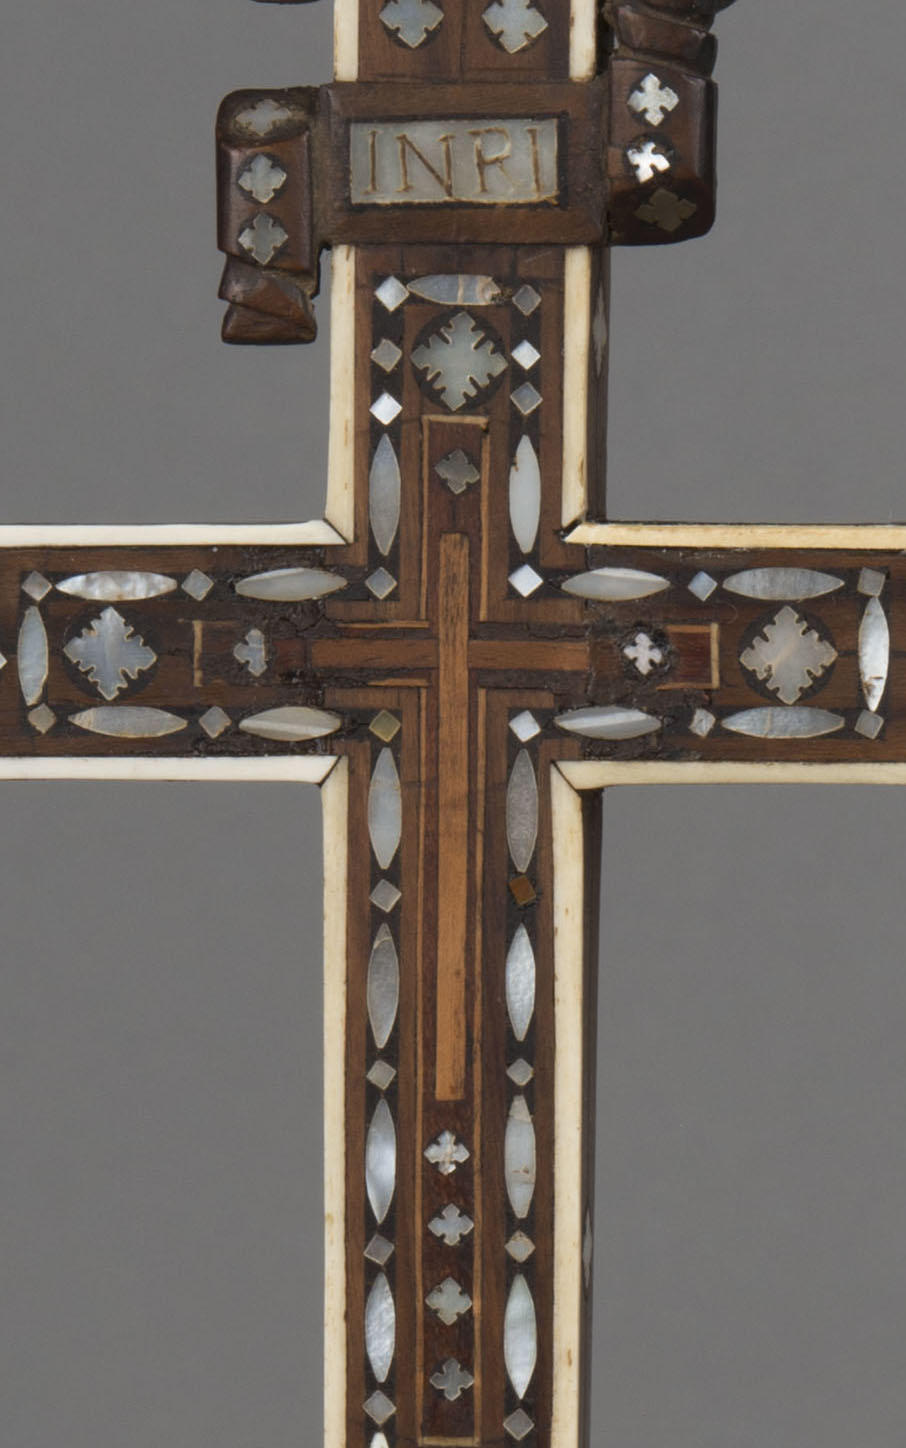 Italian, Venice, Cross, 17th century, showing a detail of the inlays